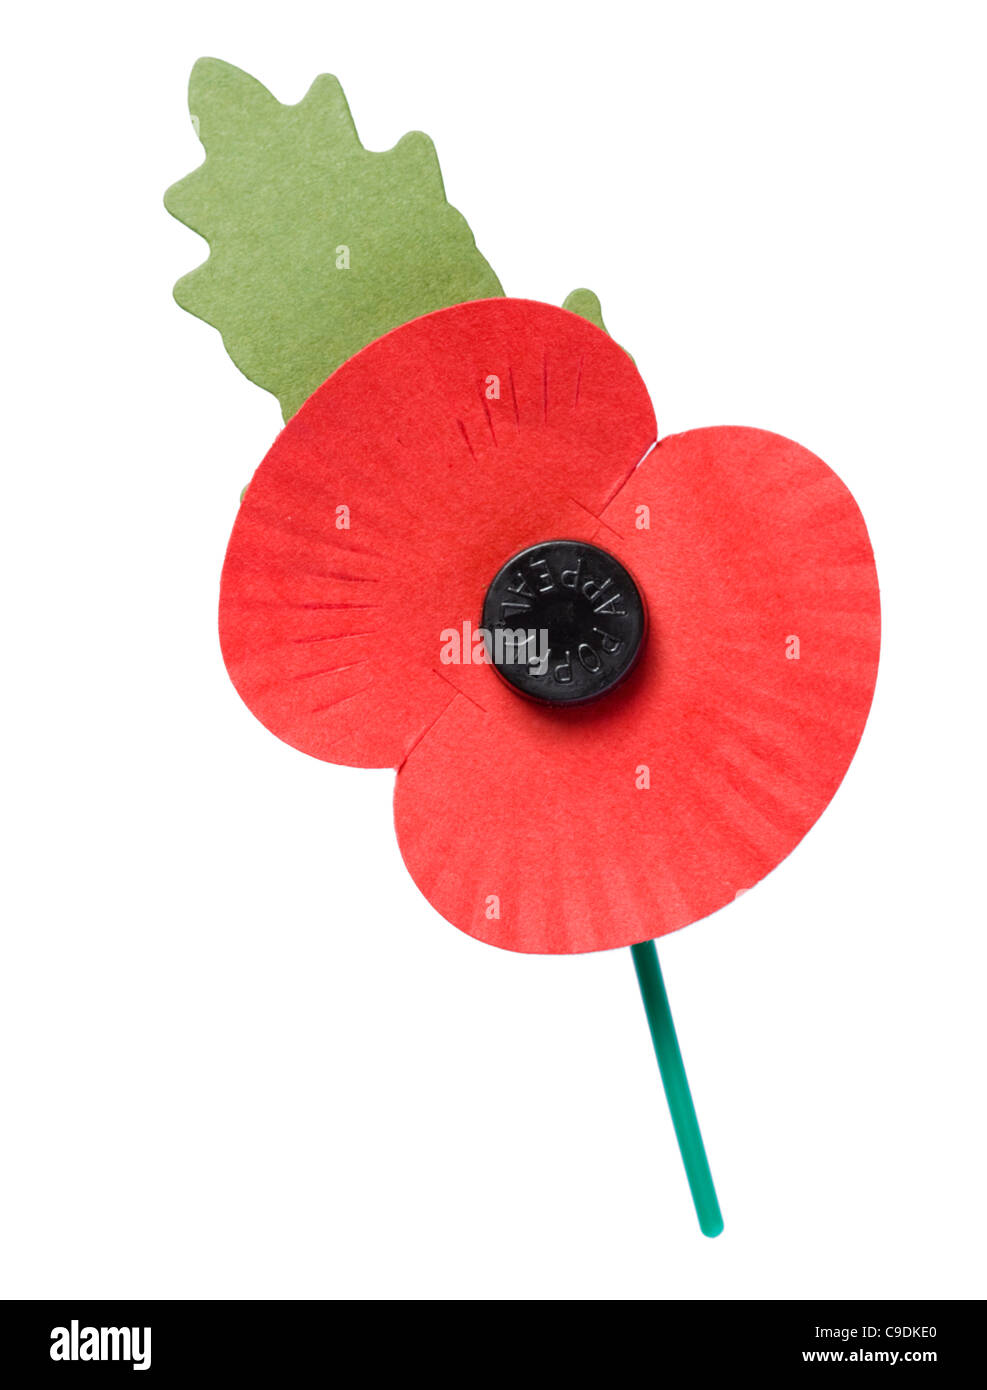 poppy appeal - photo #14